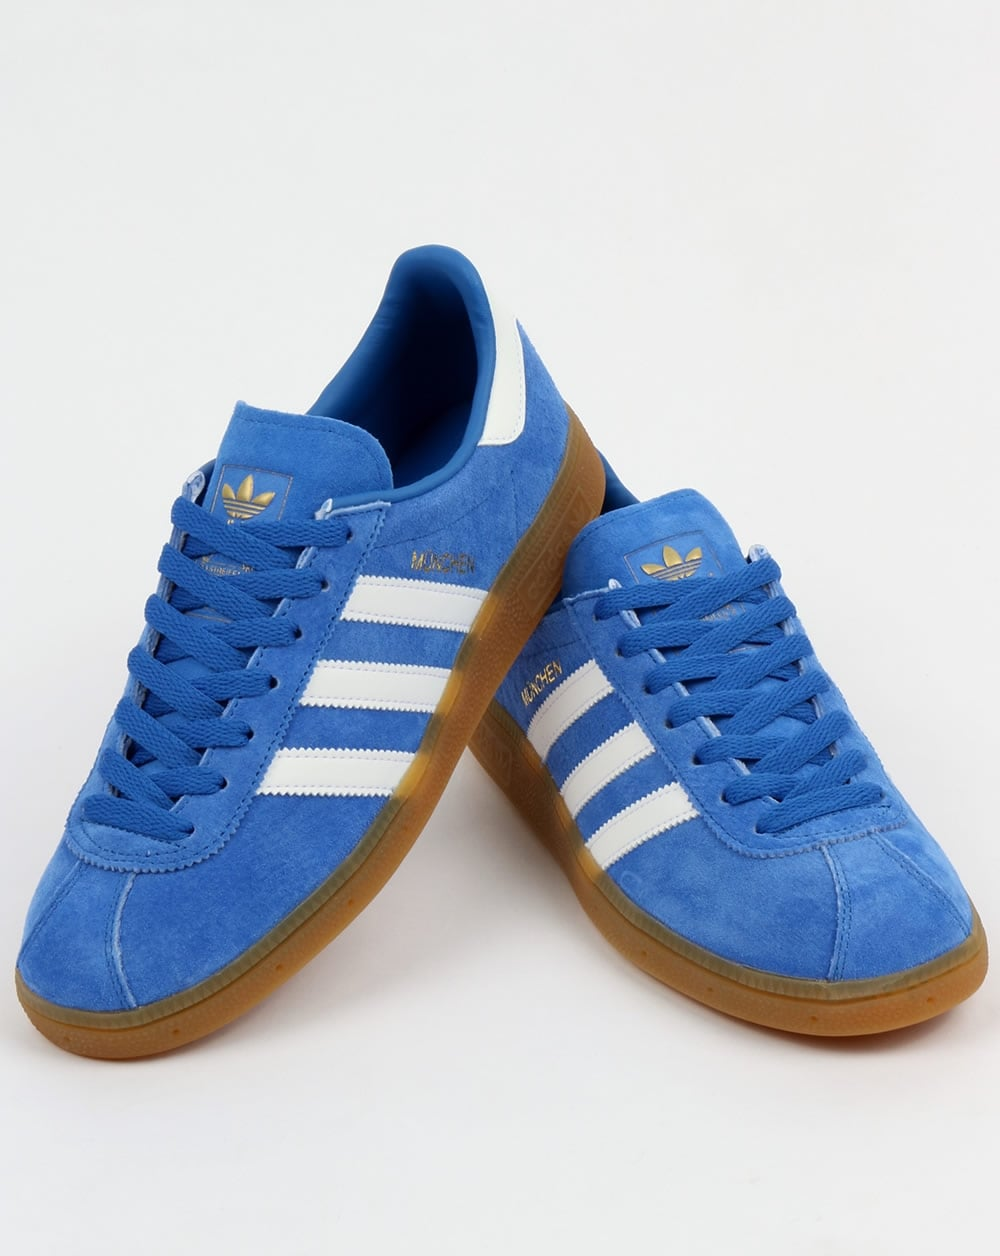 Popular Men's Adidas Shoes Adidas Originals Munchen Light